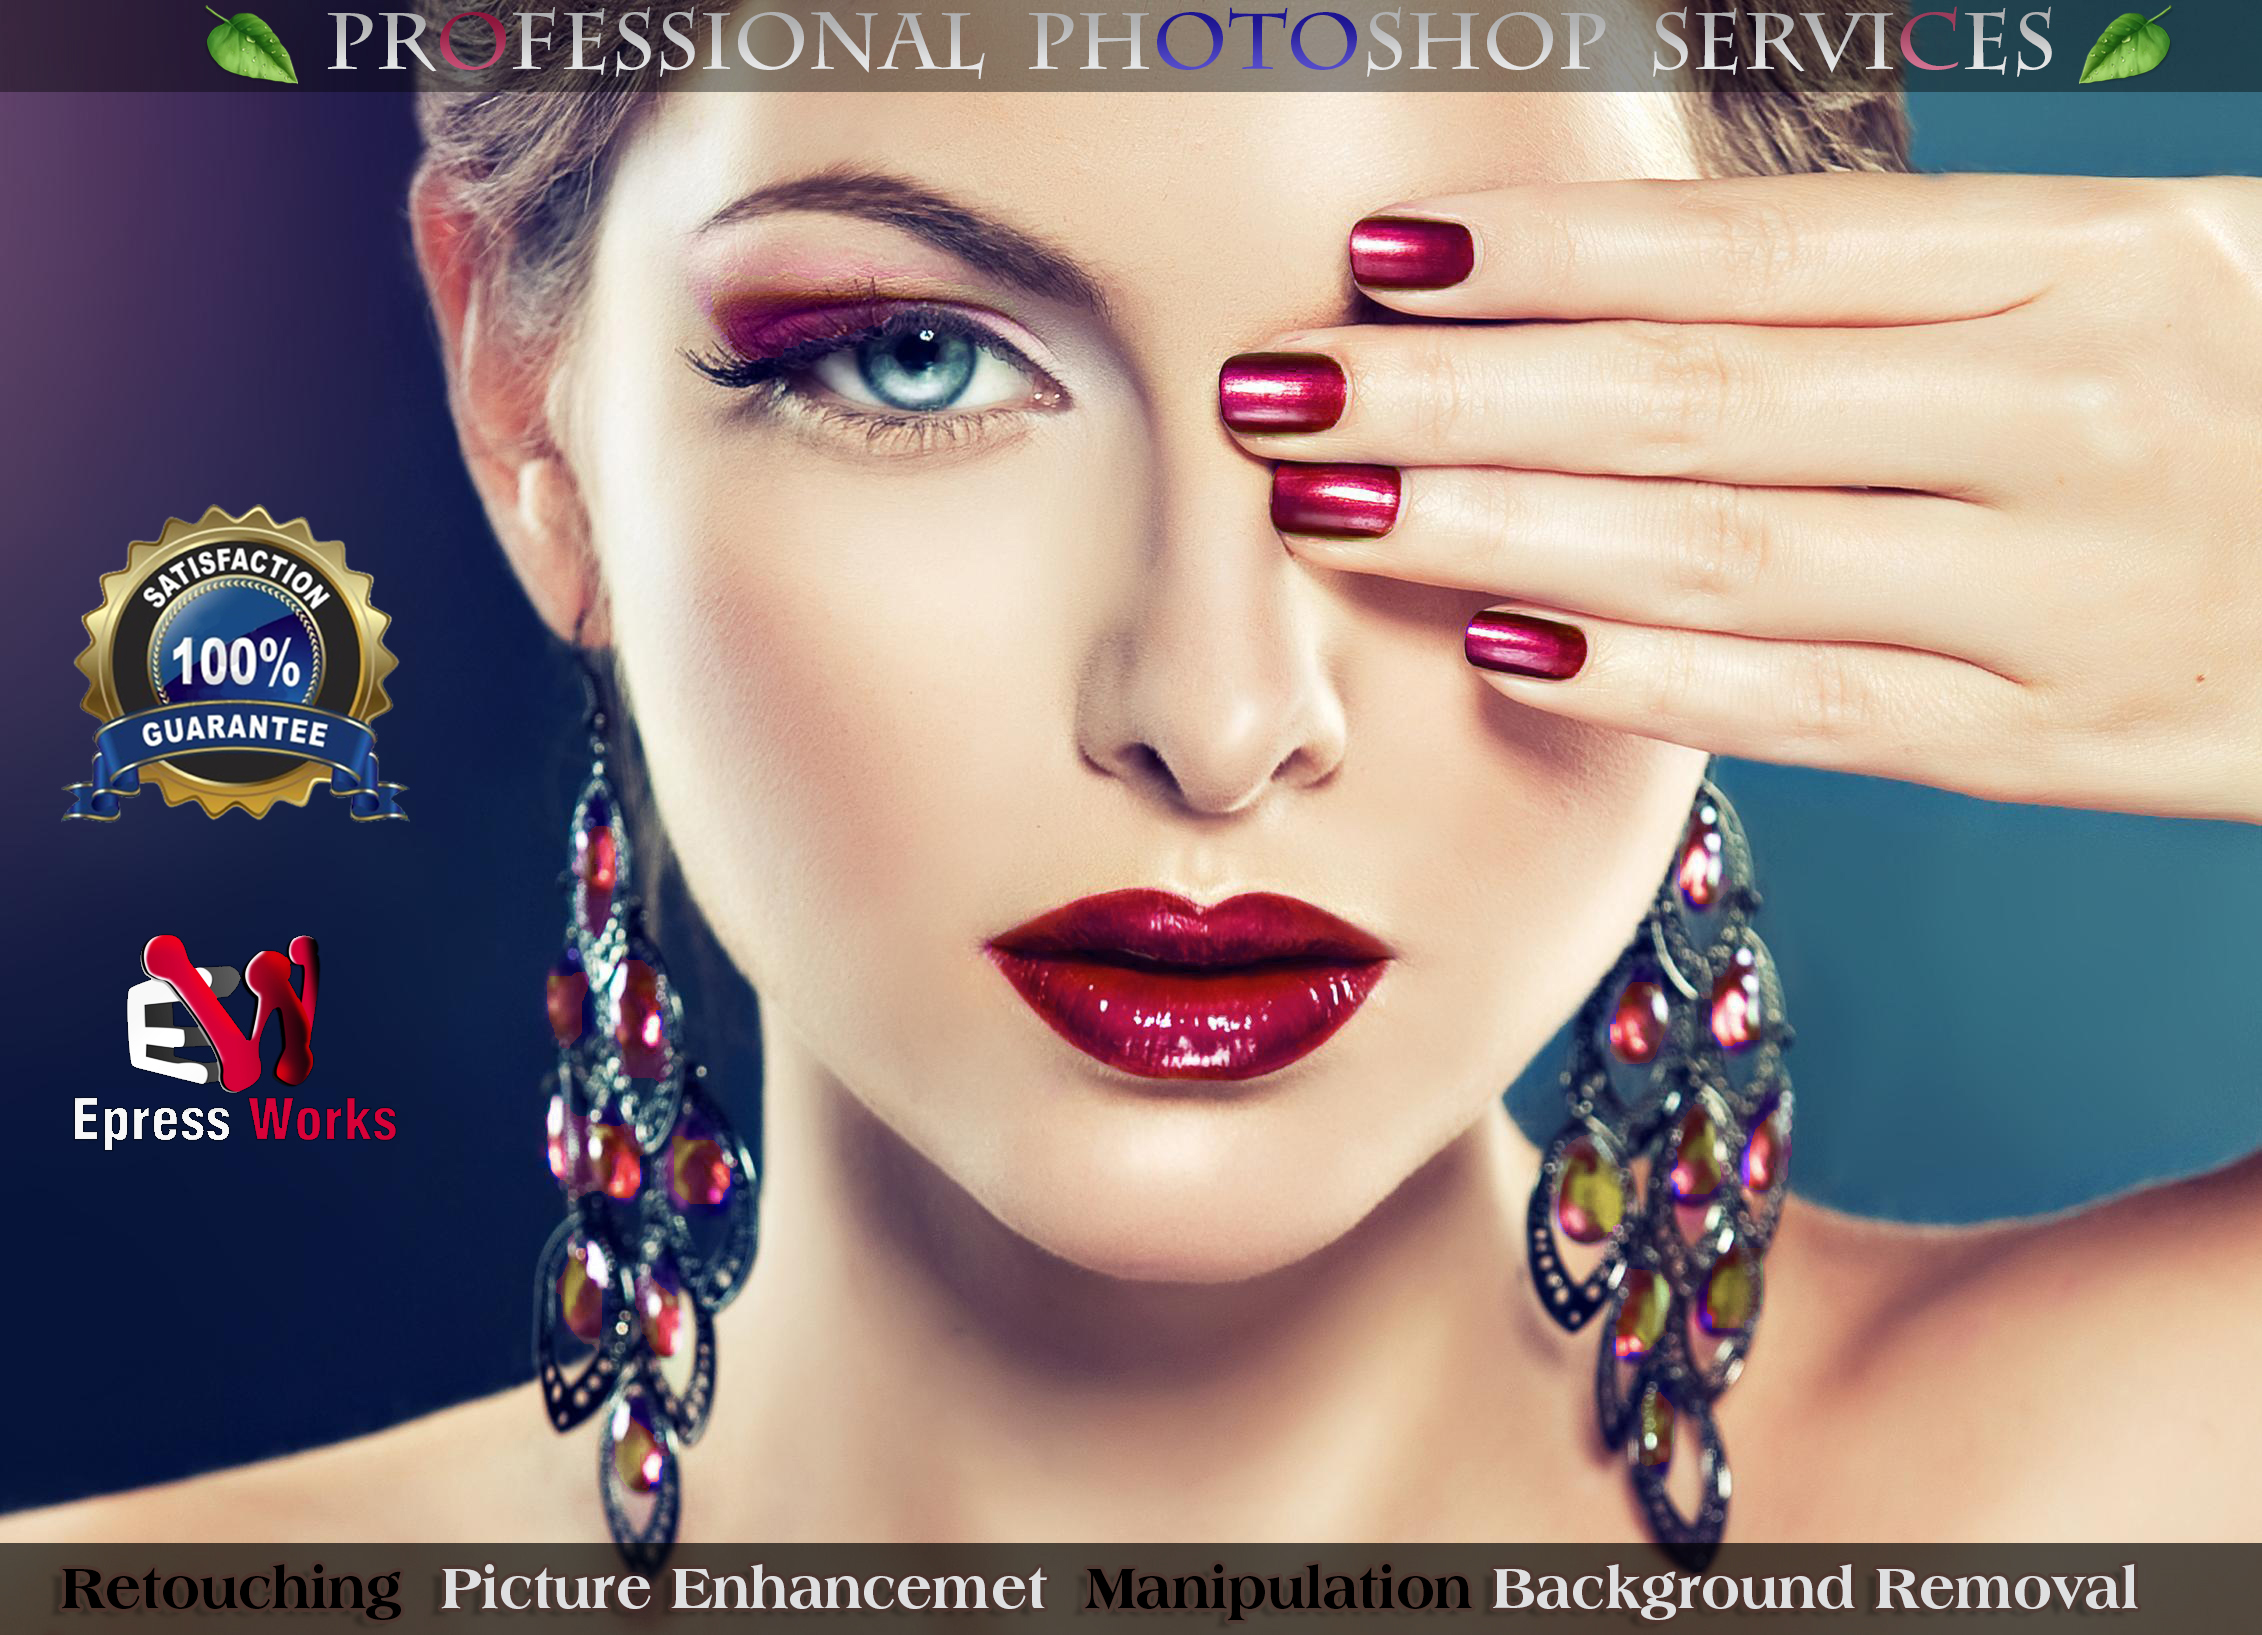 provide professional Photoshop Services